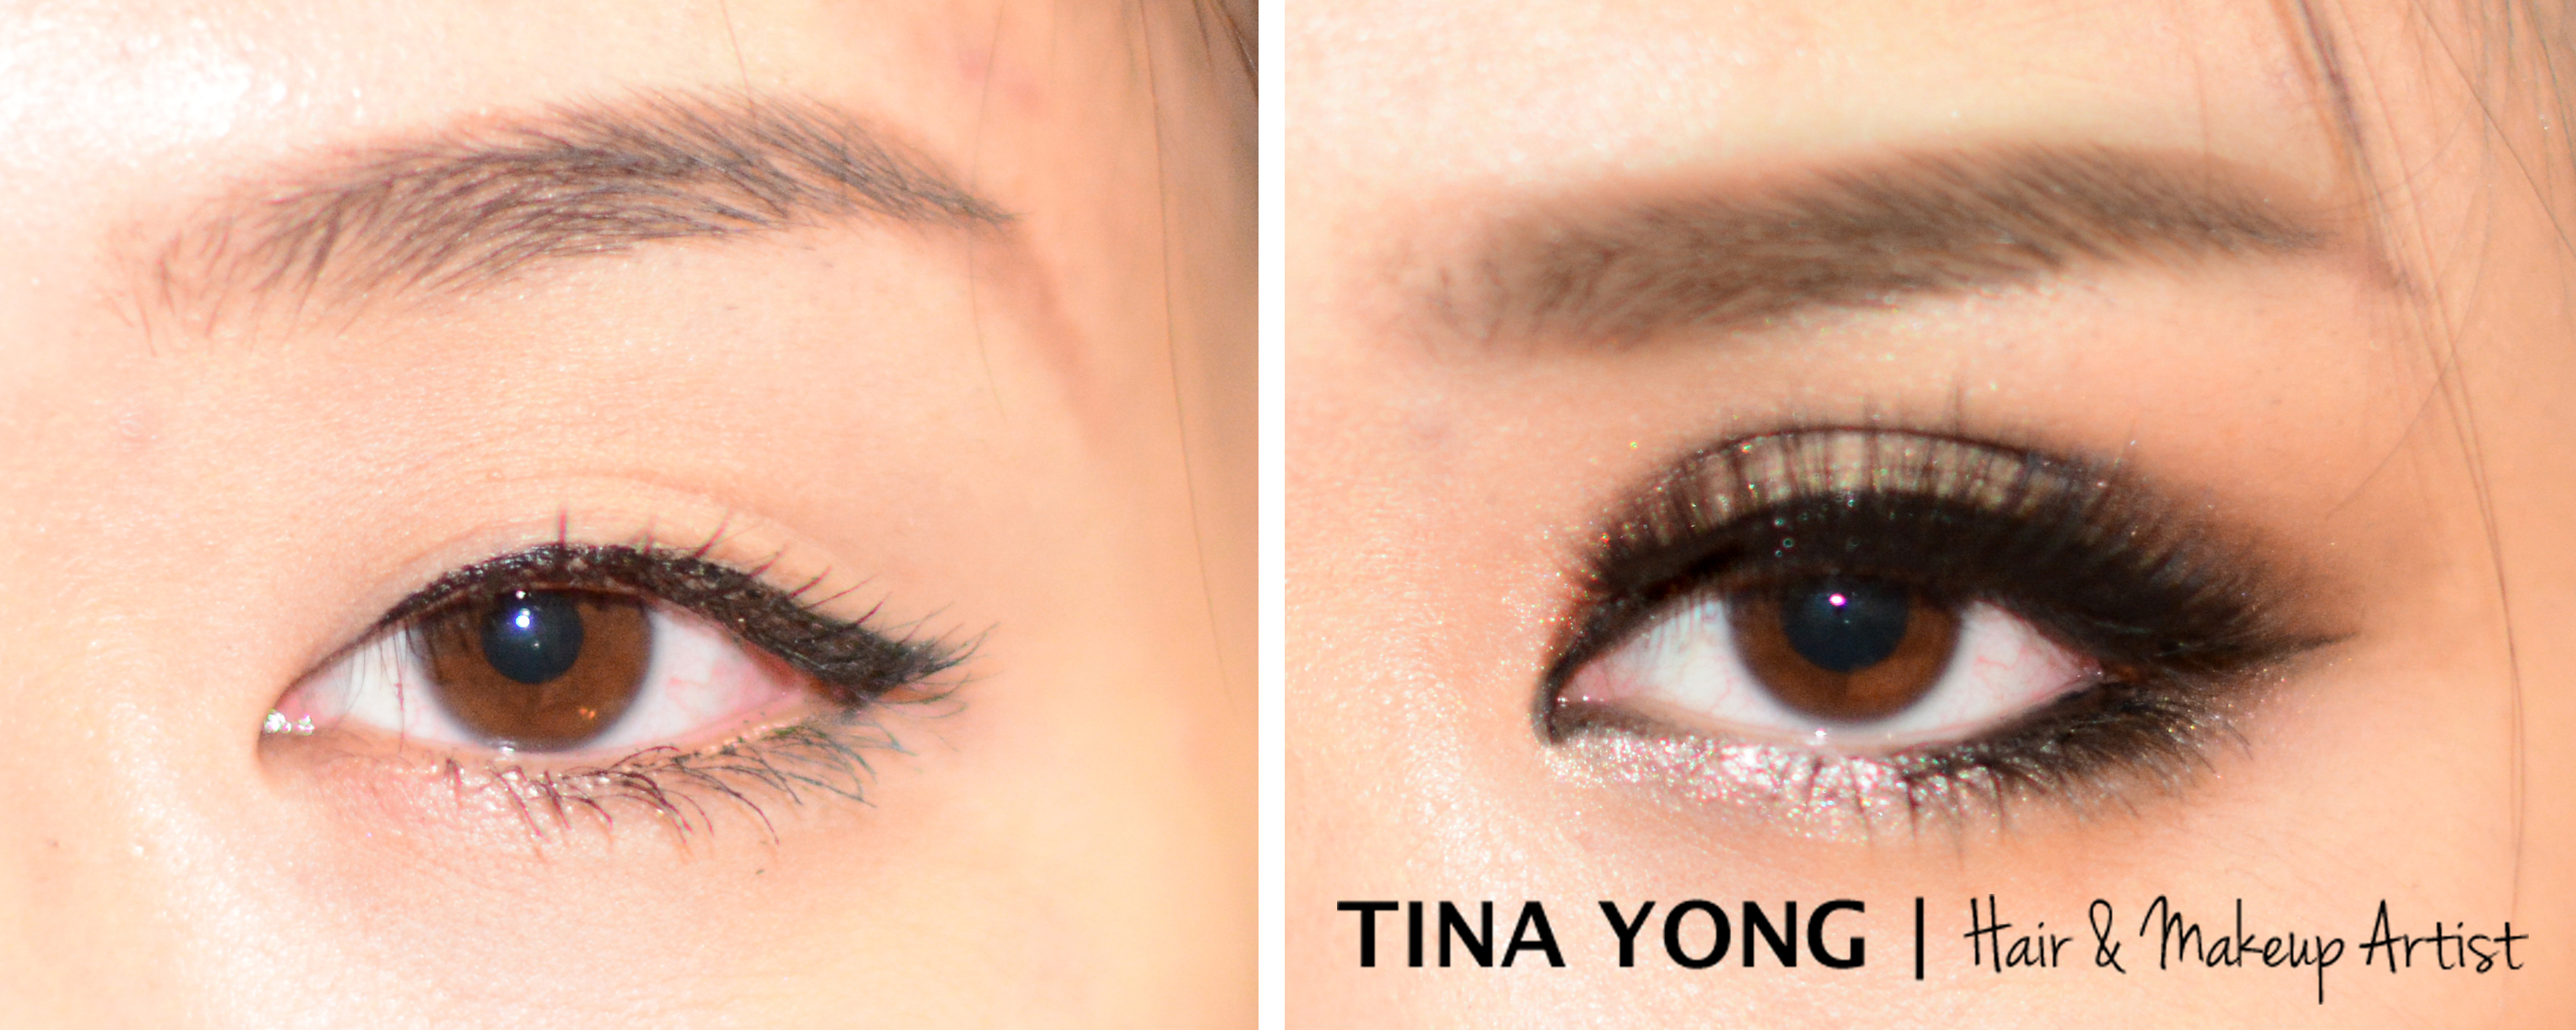 Double Eyelid Before and After | TINA YONG